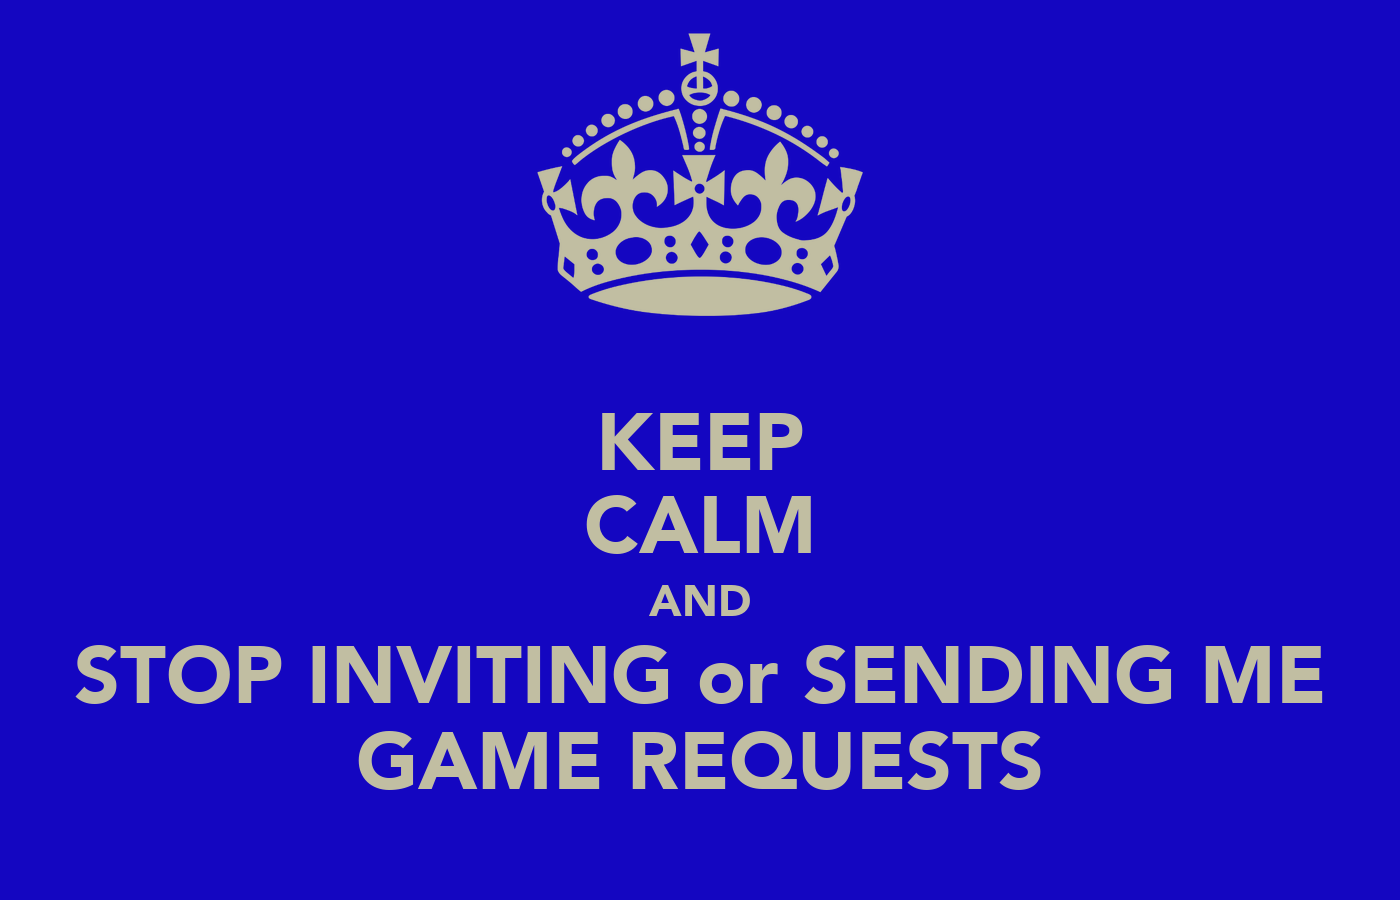 KEEP CALM AND STOP INVITING or SENDING ME GAME REQUESTS ...